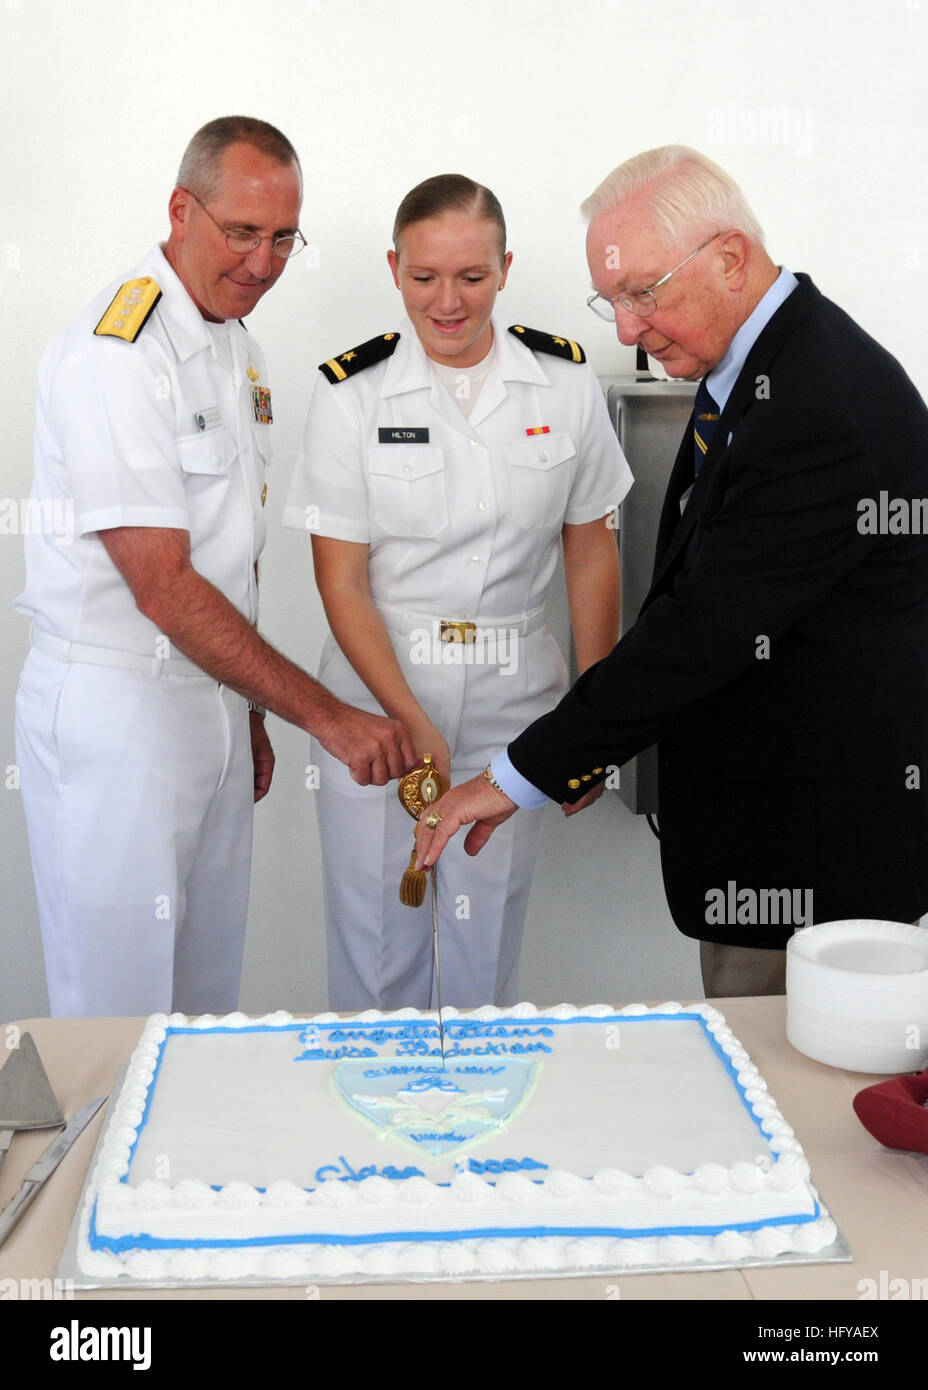 100716-N-0569T-098 SAN DIEGO (July 16, 2010) Ensign Anna Joy Hilton, center, Honor Graduate, cuts the cake at the - Stock Image